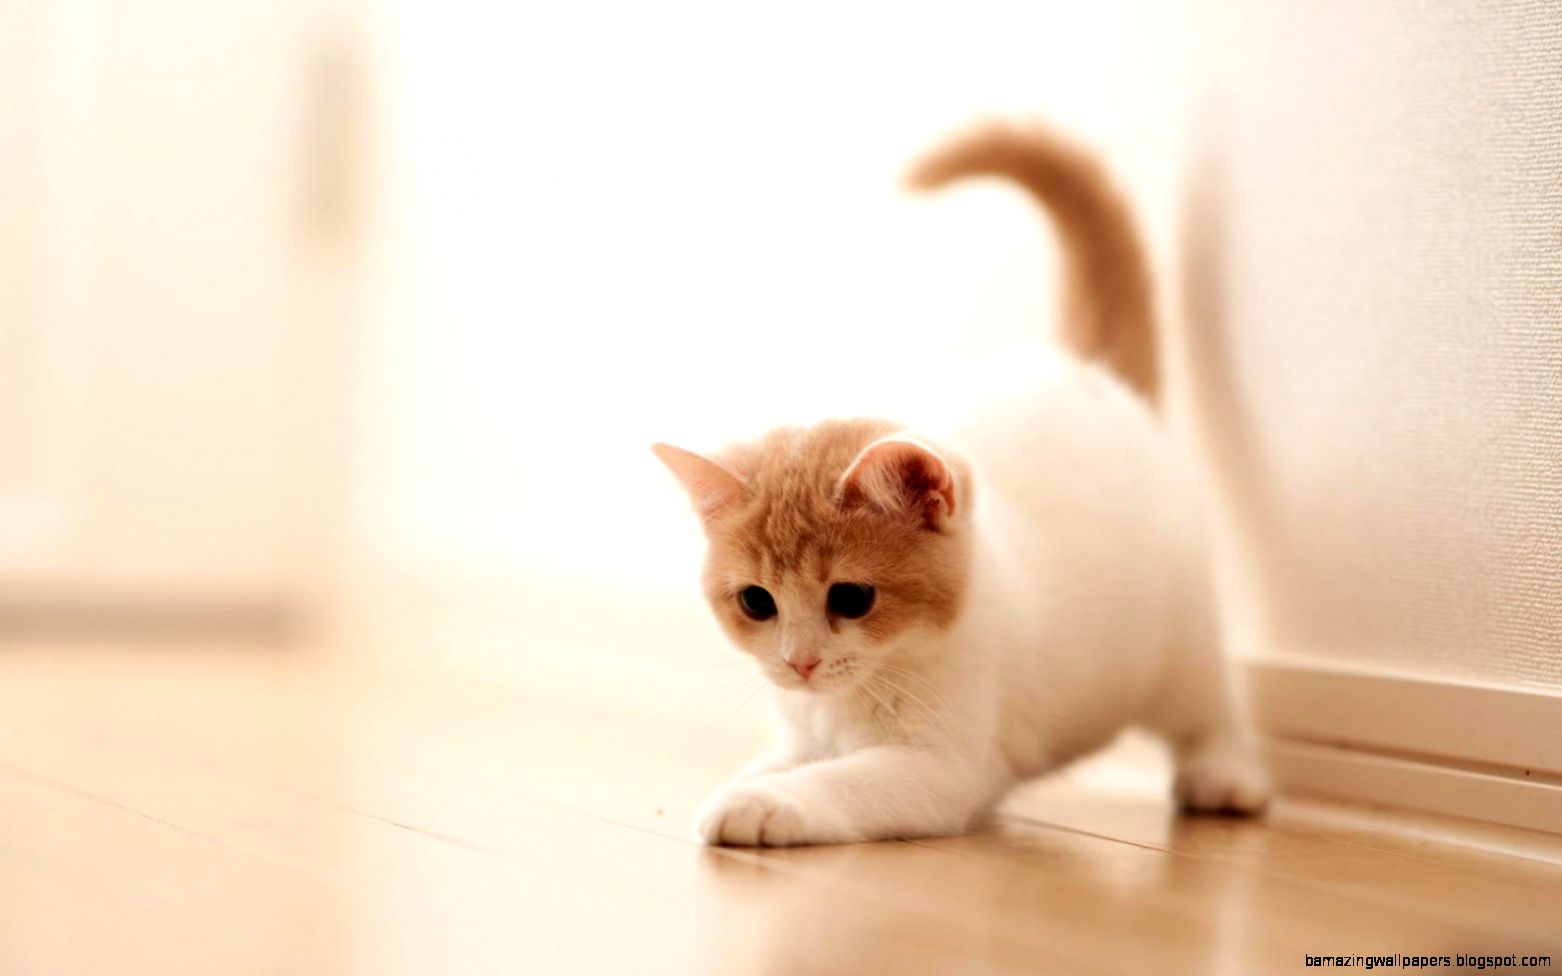 Cute cat tumblr backgrounds amazing wallpapers view original size voltagebd Images